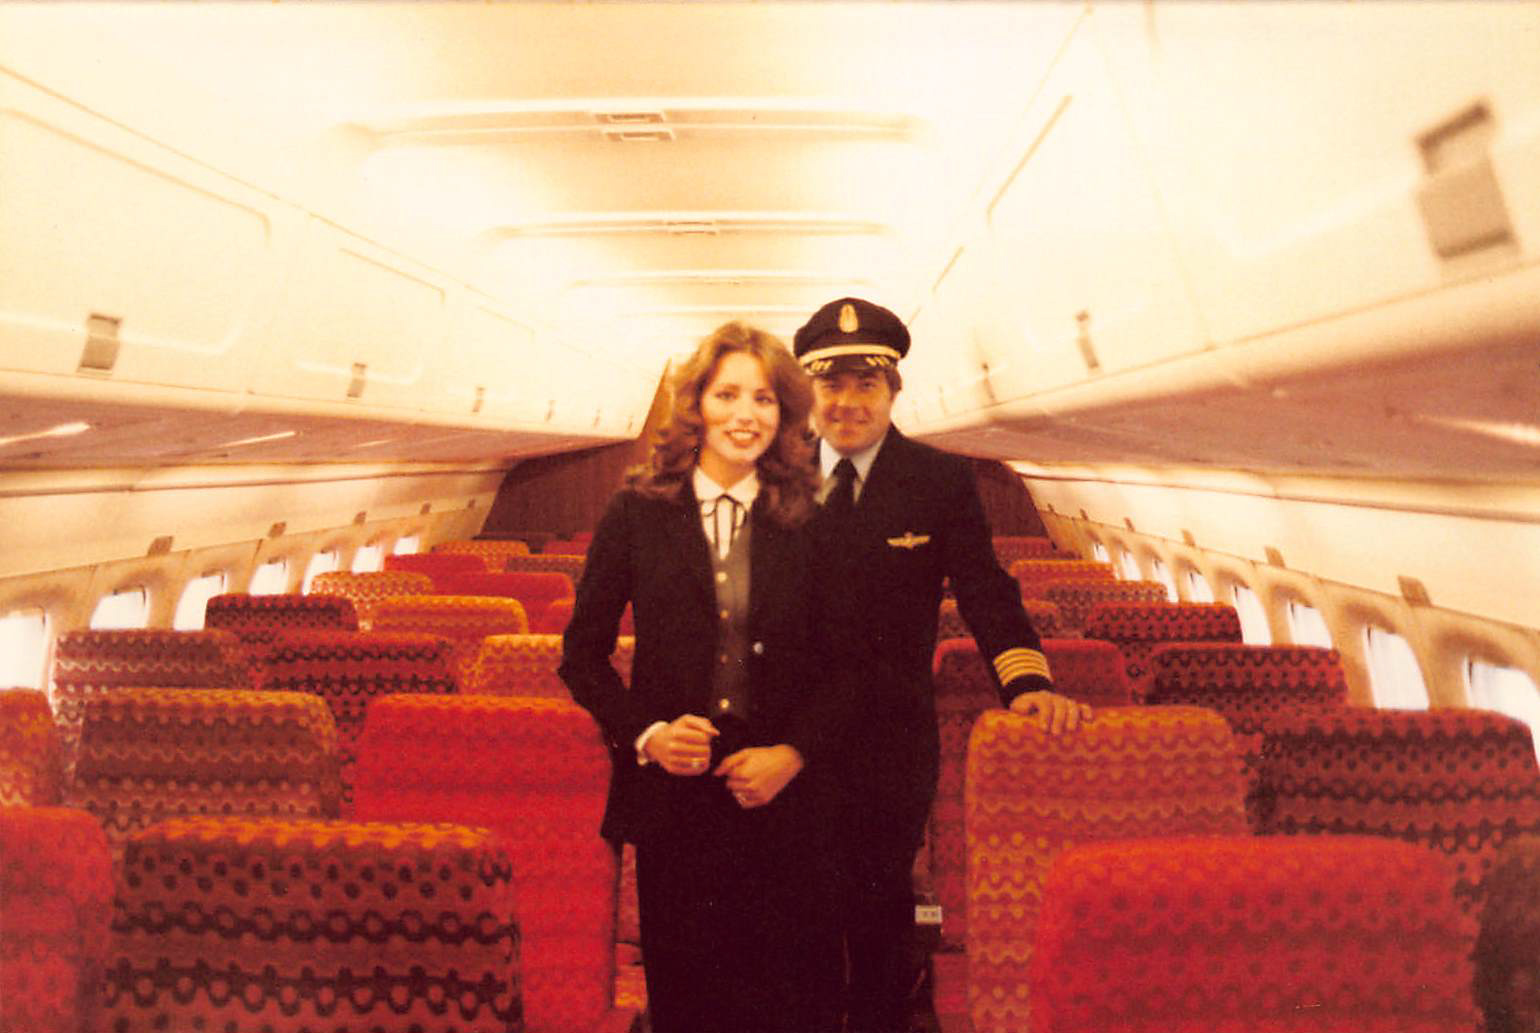 Harry and Myself in his plane